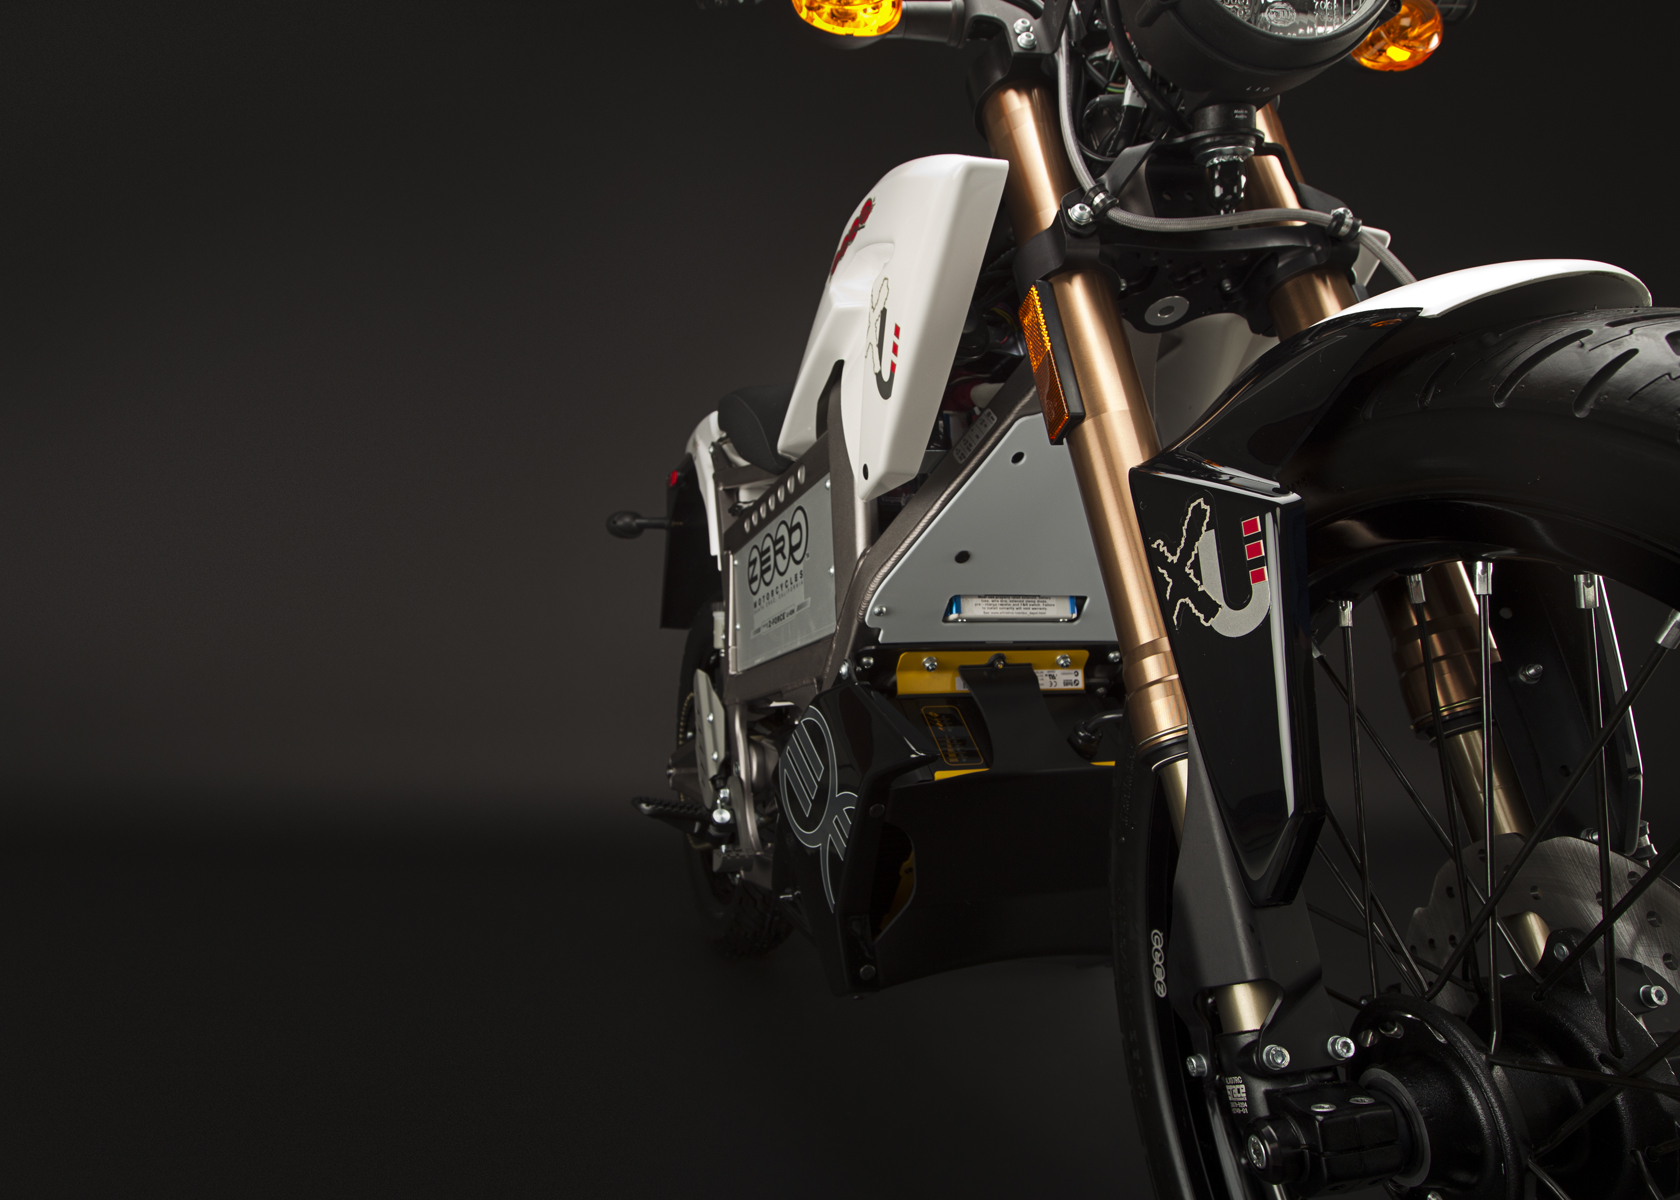 2011 Zero XU Electric Motorcycle: Front Fork